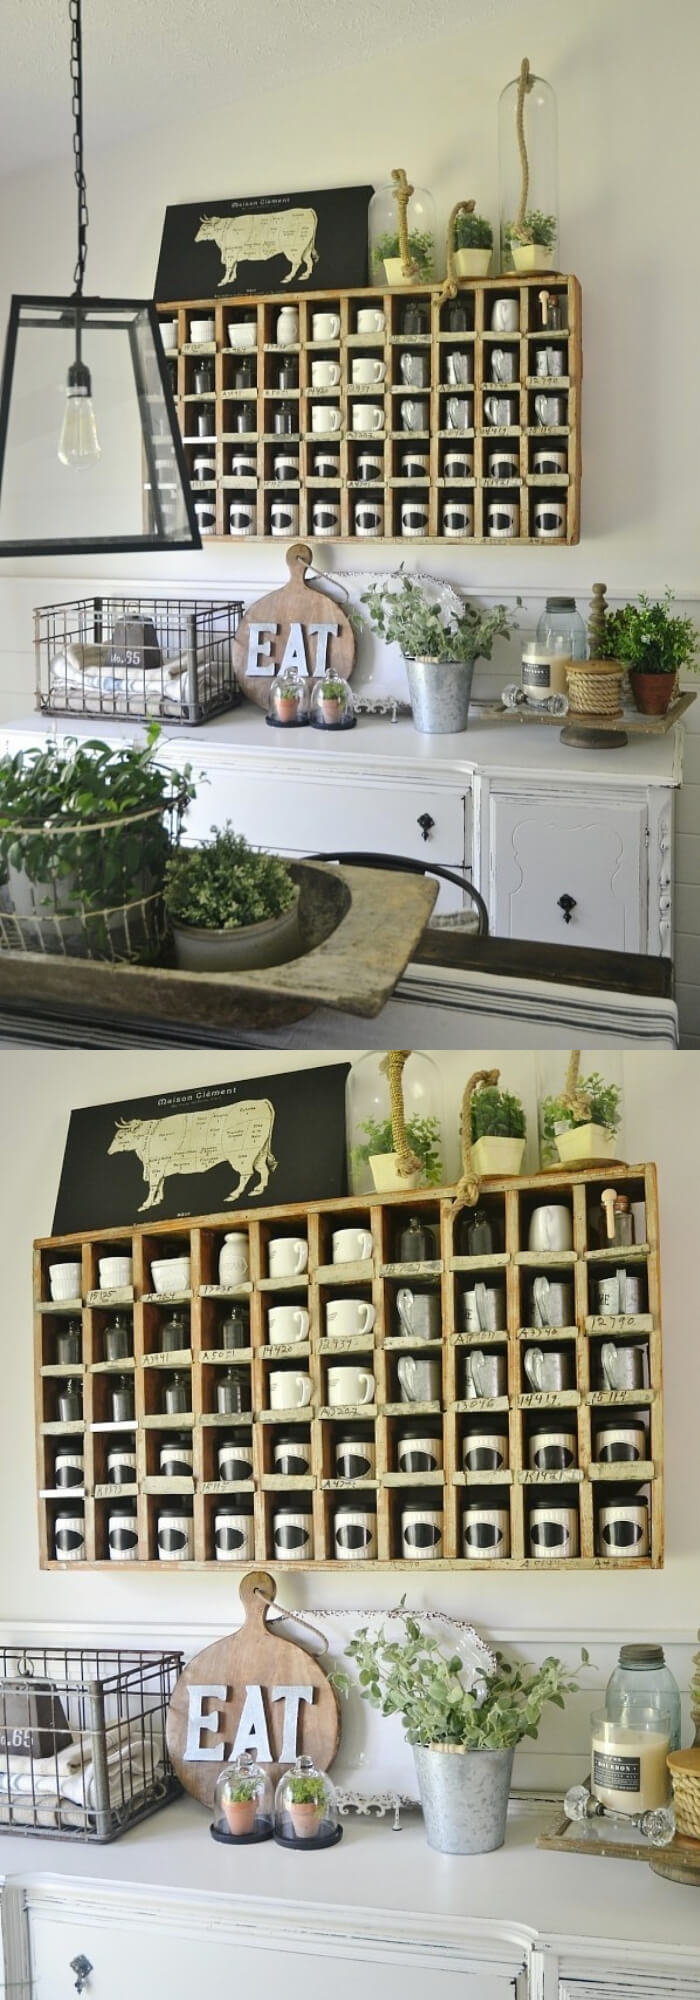 Cubbies with black & white spice jars | Stunning Farmhouse Dining Room Design & Decor Ideas